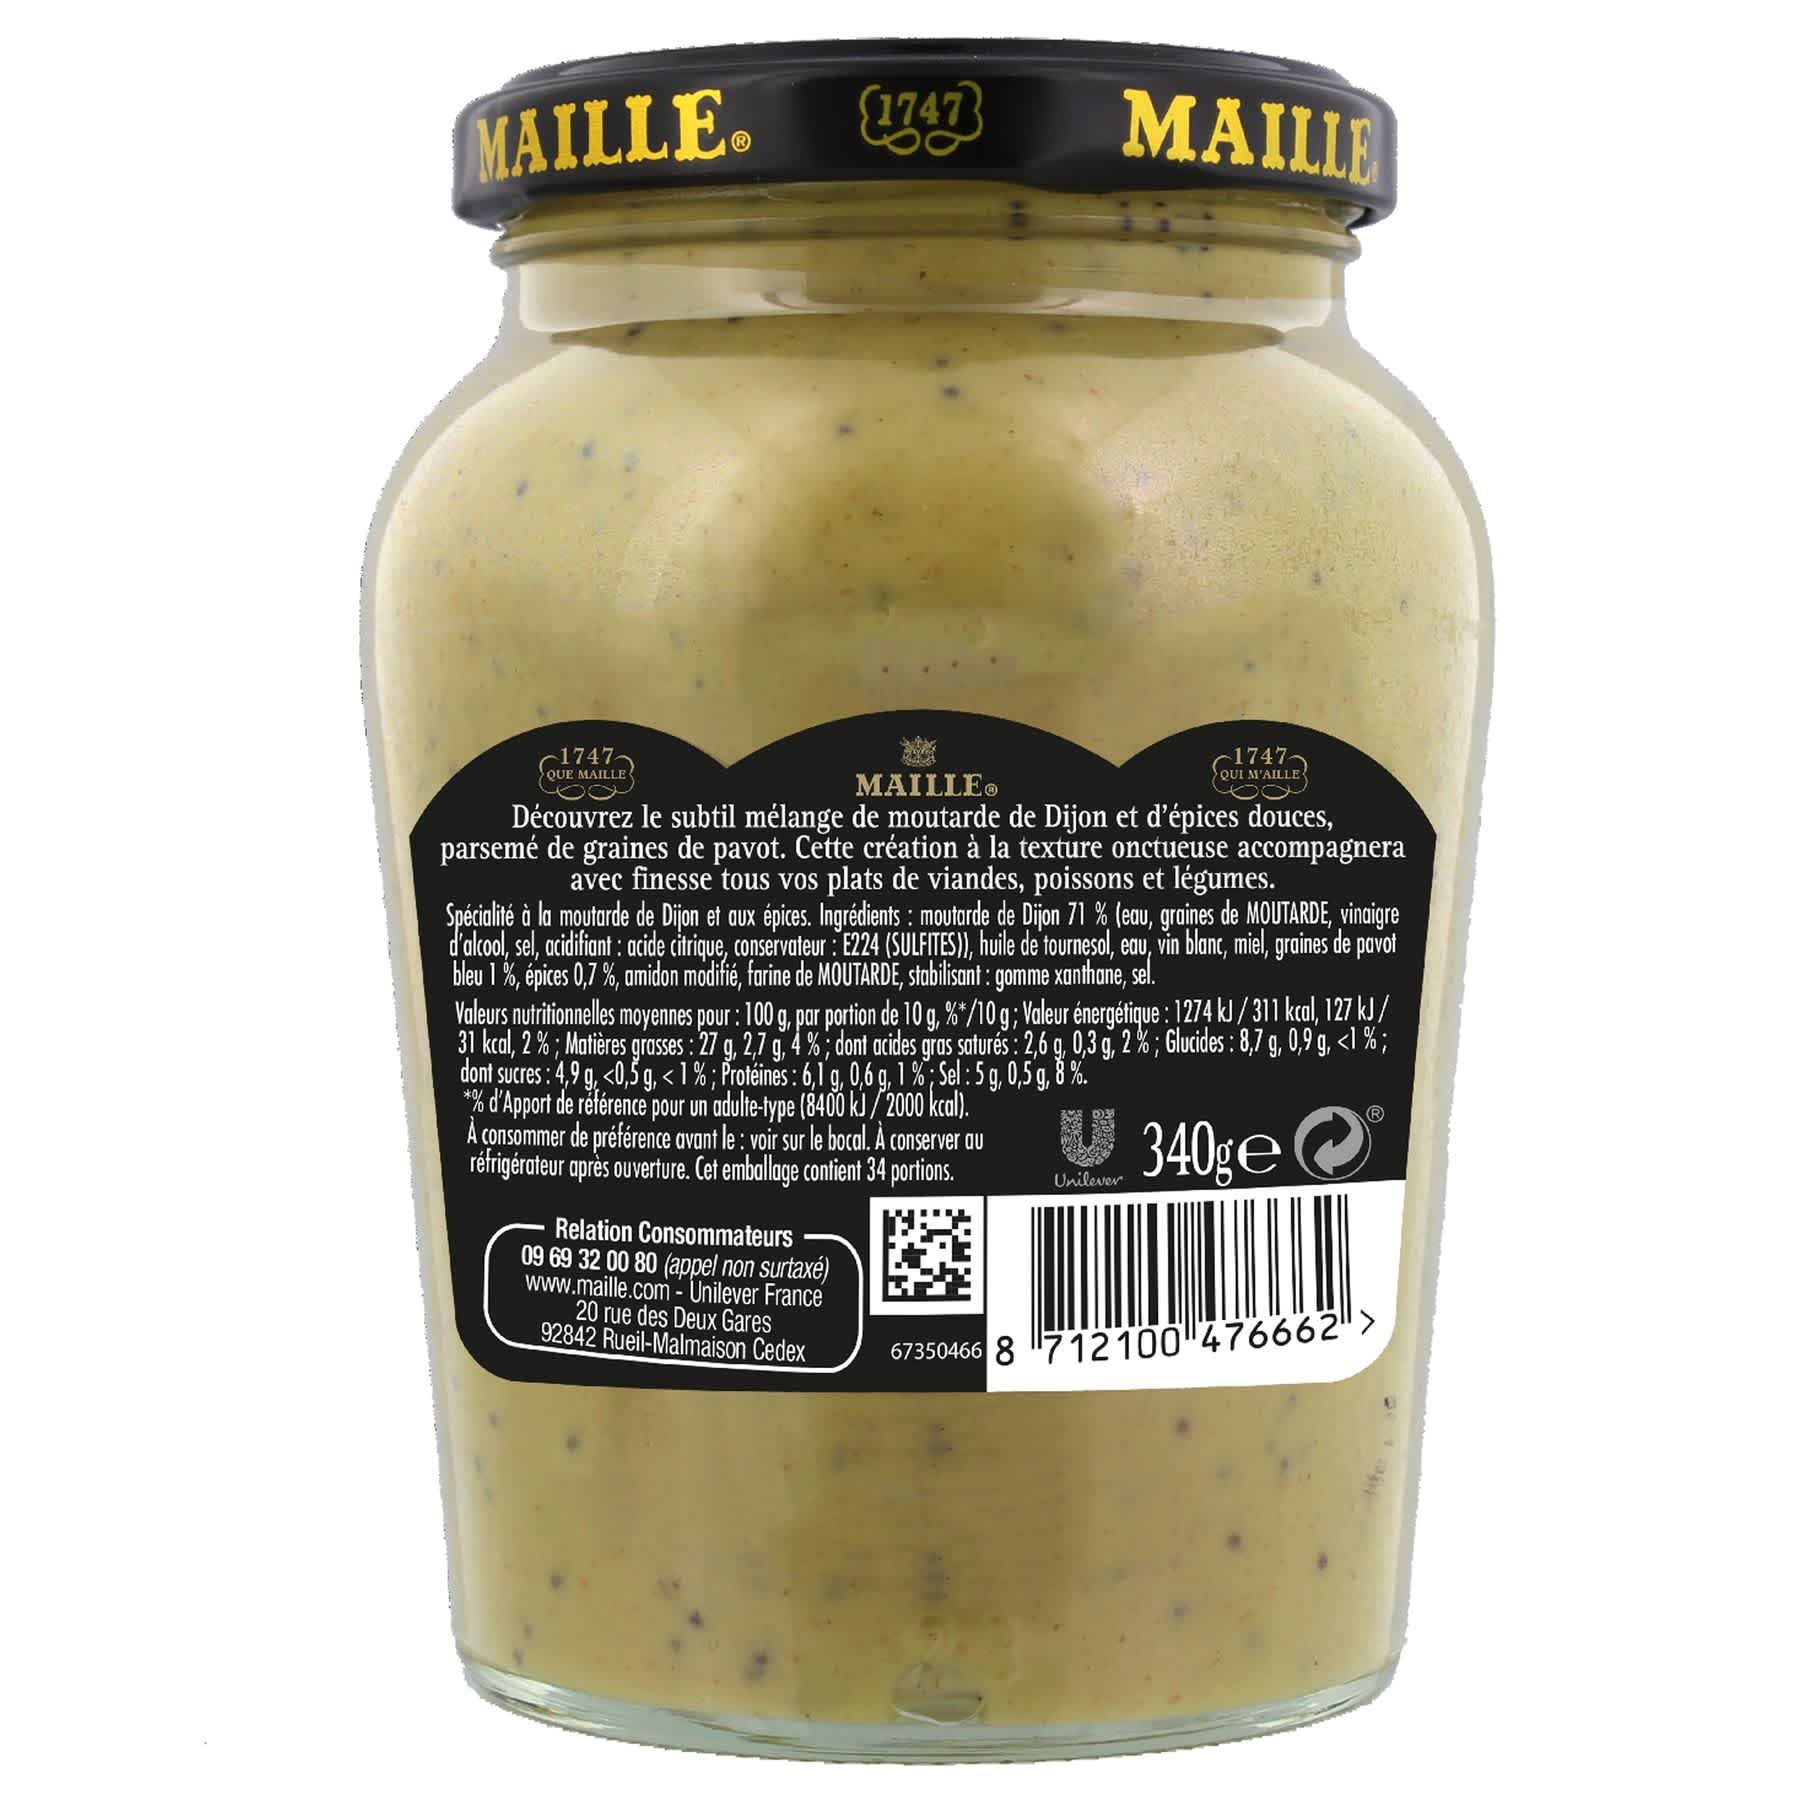 Maille Specialite a la Moutarde Fins Gourmets Pointe d'Epices Bocal 340g, backend